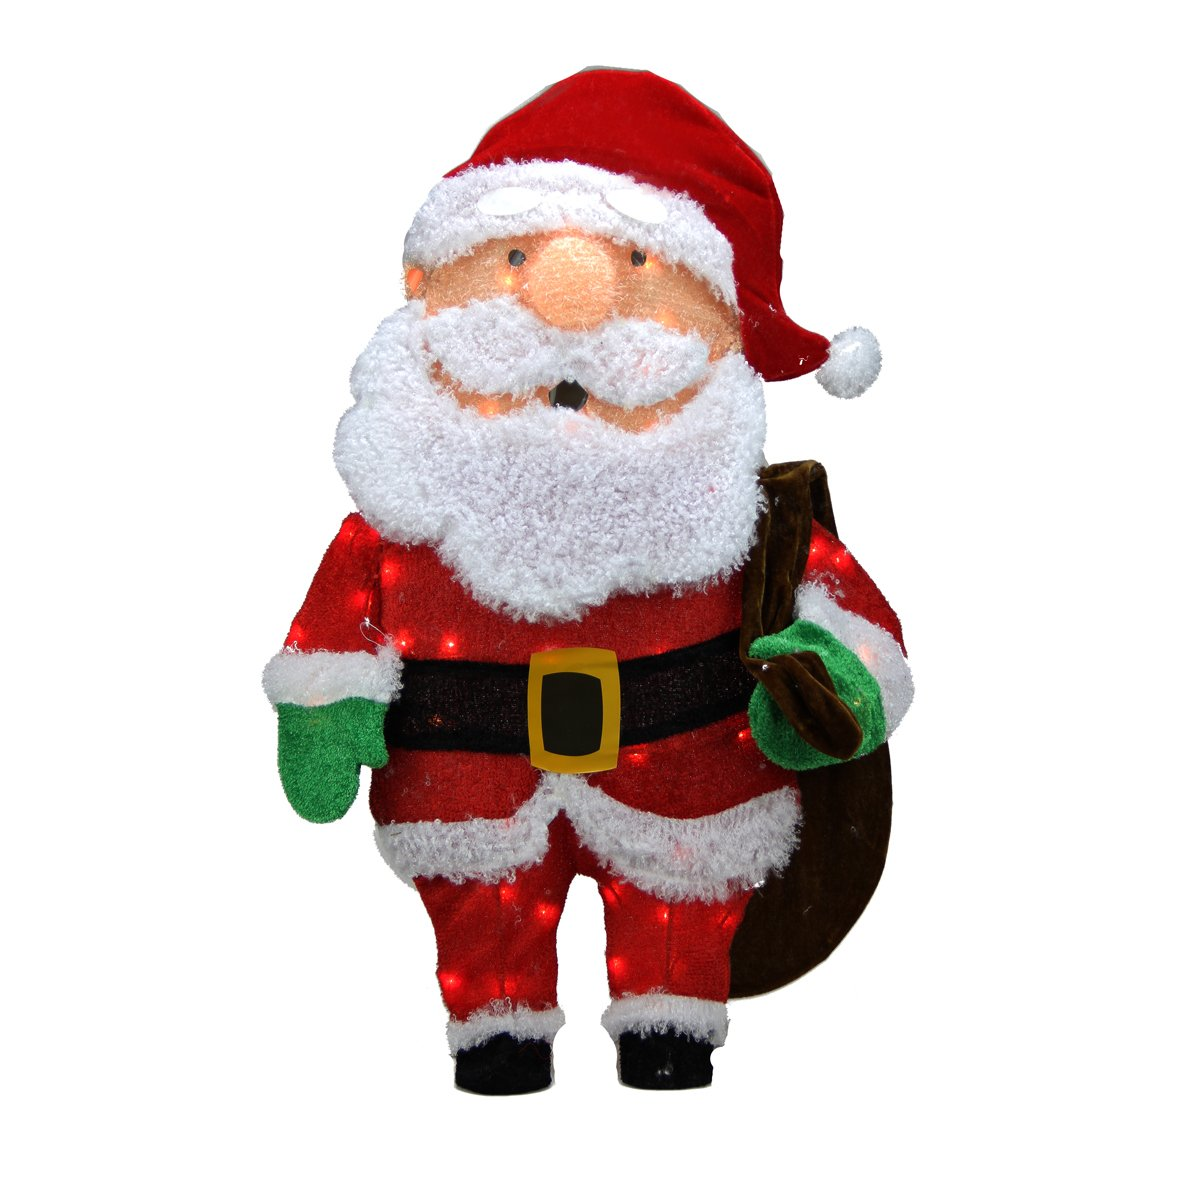 ProductWorks 32-Inch Pre-Lit Candy Cane Lane Santa Claus Christmas Yard Decoration, 50 Lights